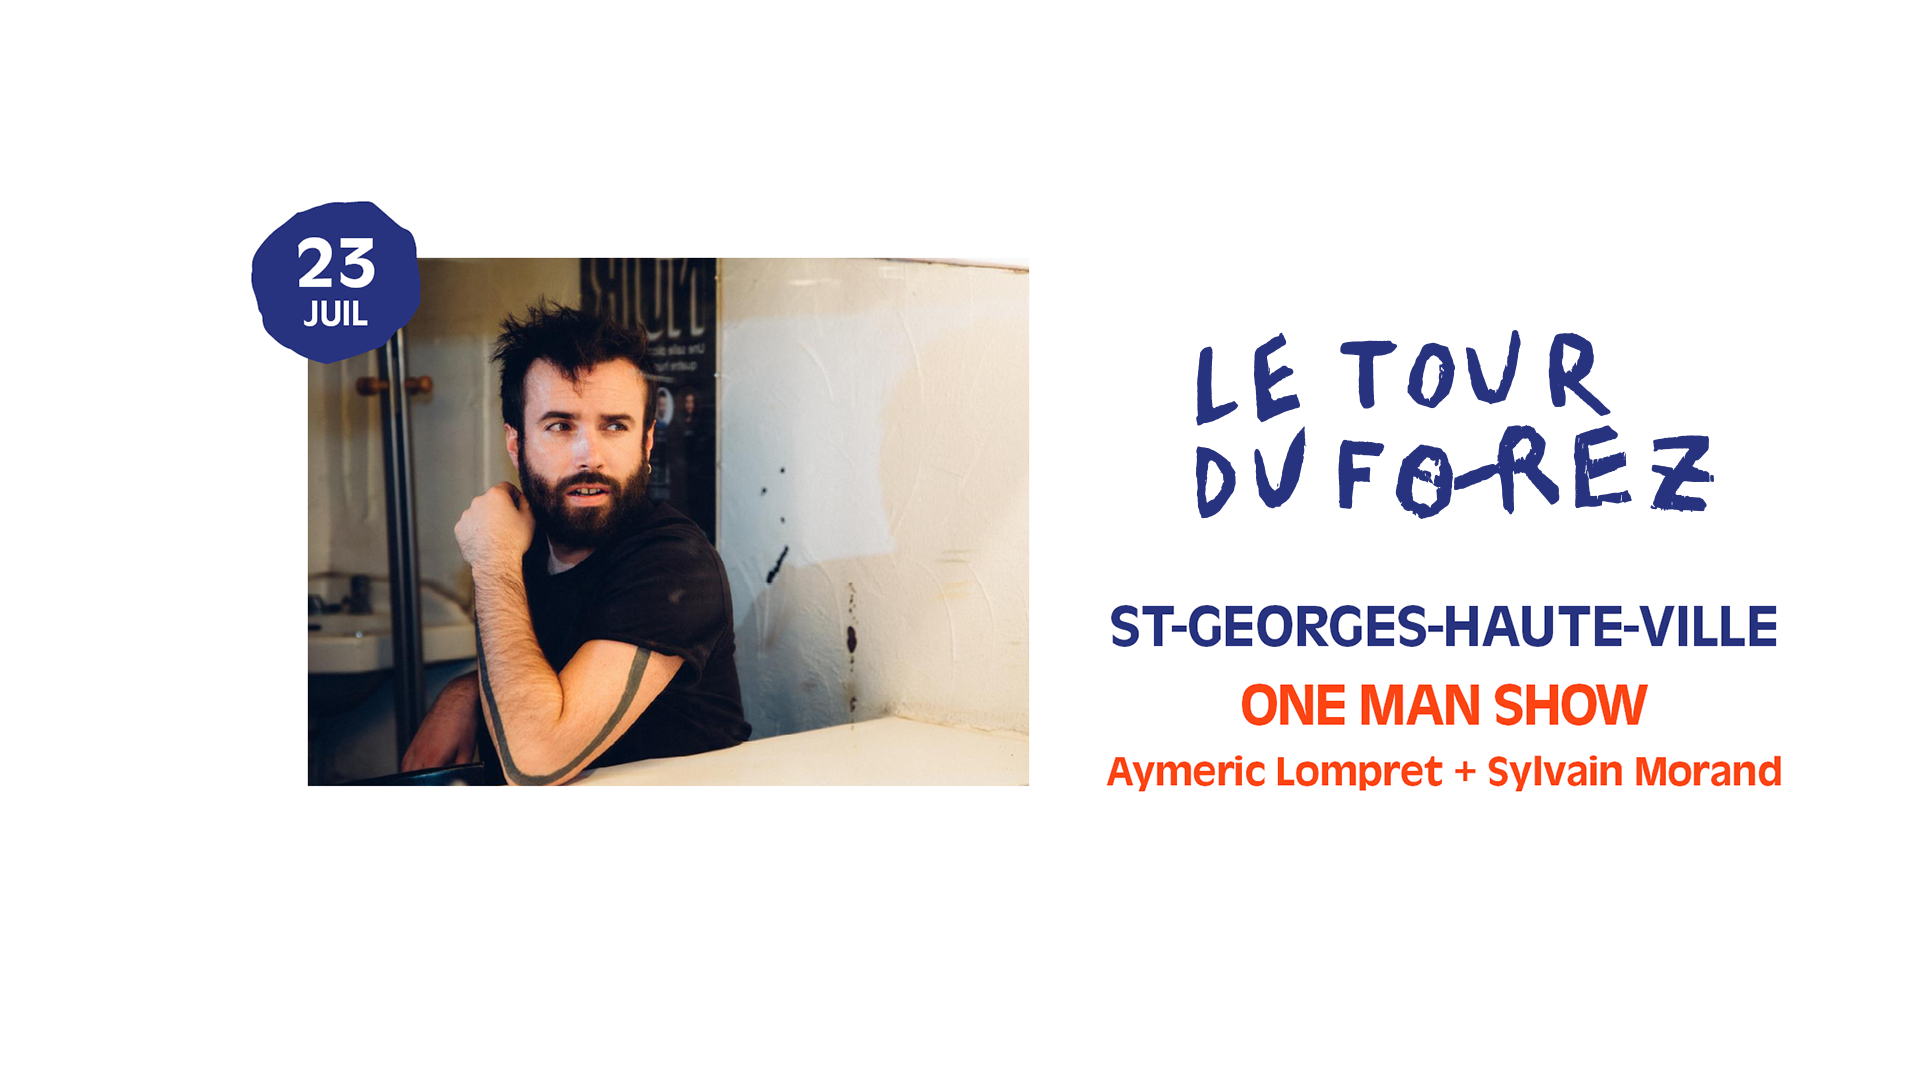 One man show Aymeric Lompret